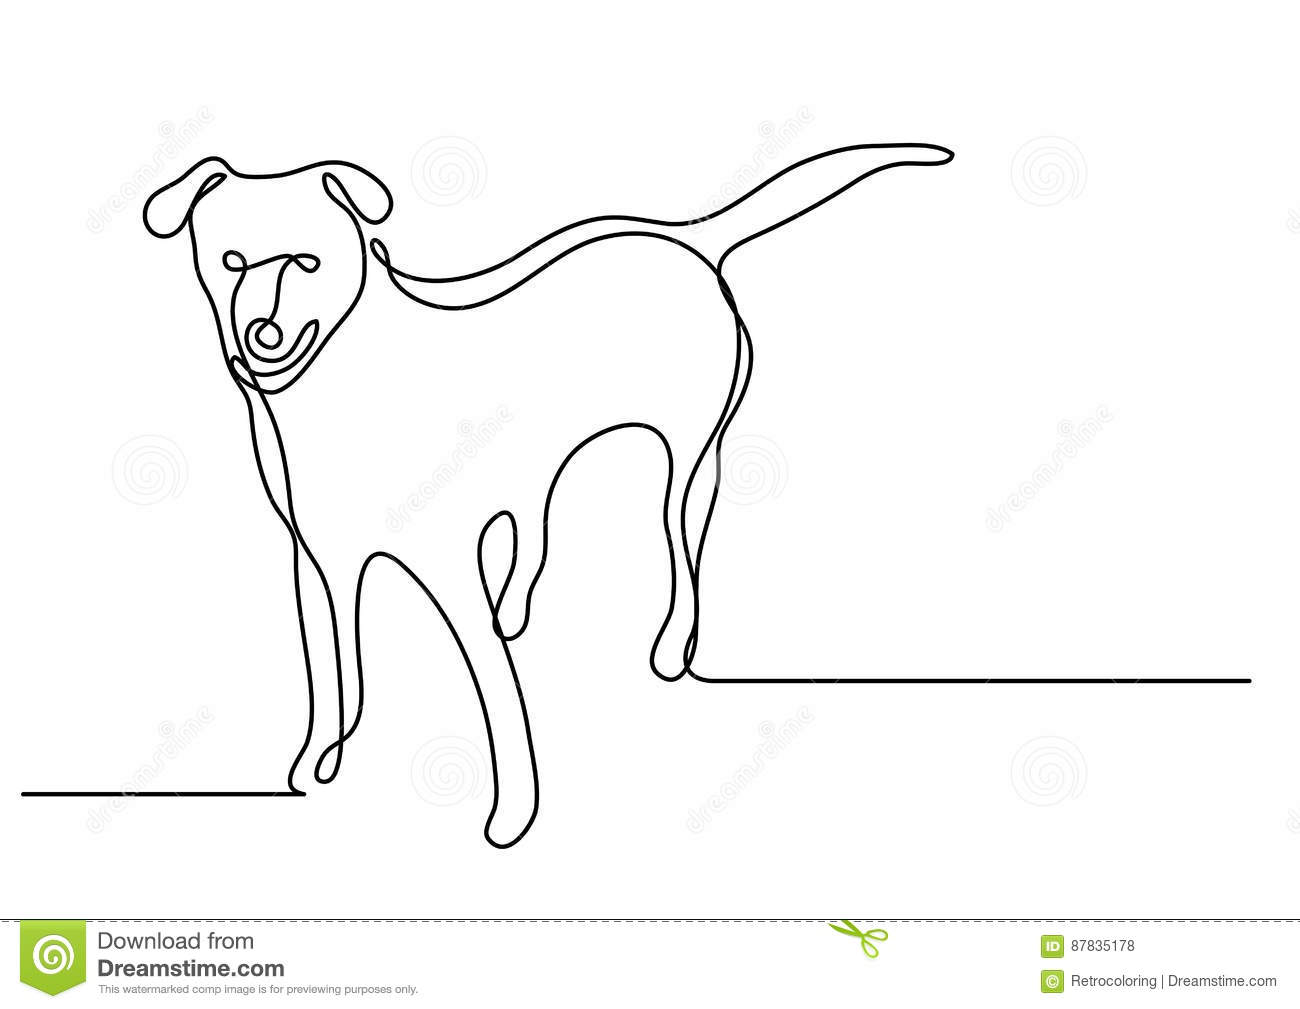 Contour Line Drawing Of A Dog : Continuous line drawing of standing dog vector